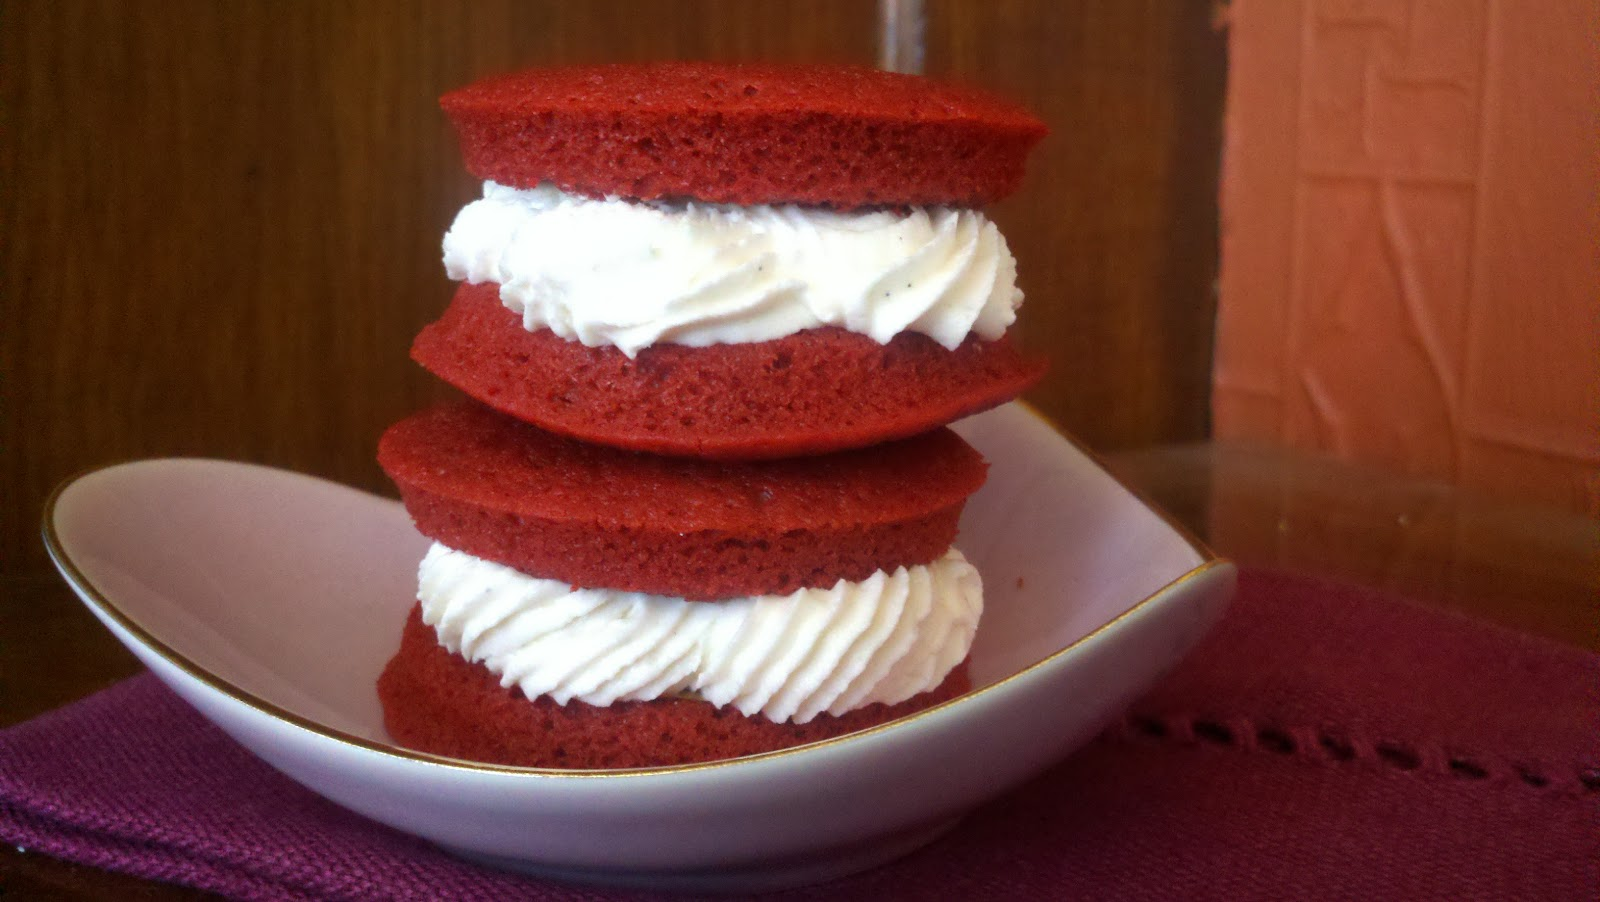 Ross Sveback - Elevating the Everyday: Red Velvet Whoopie Pies